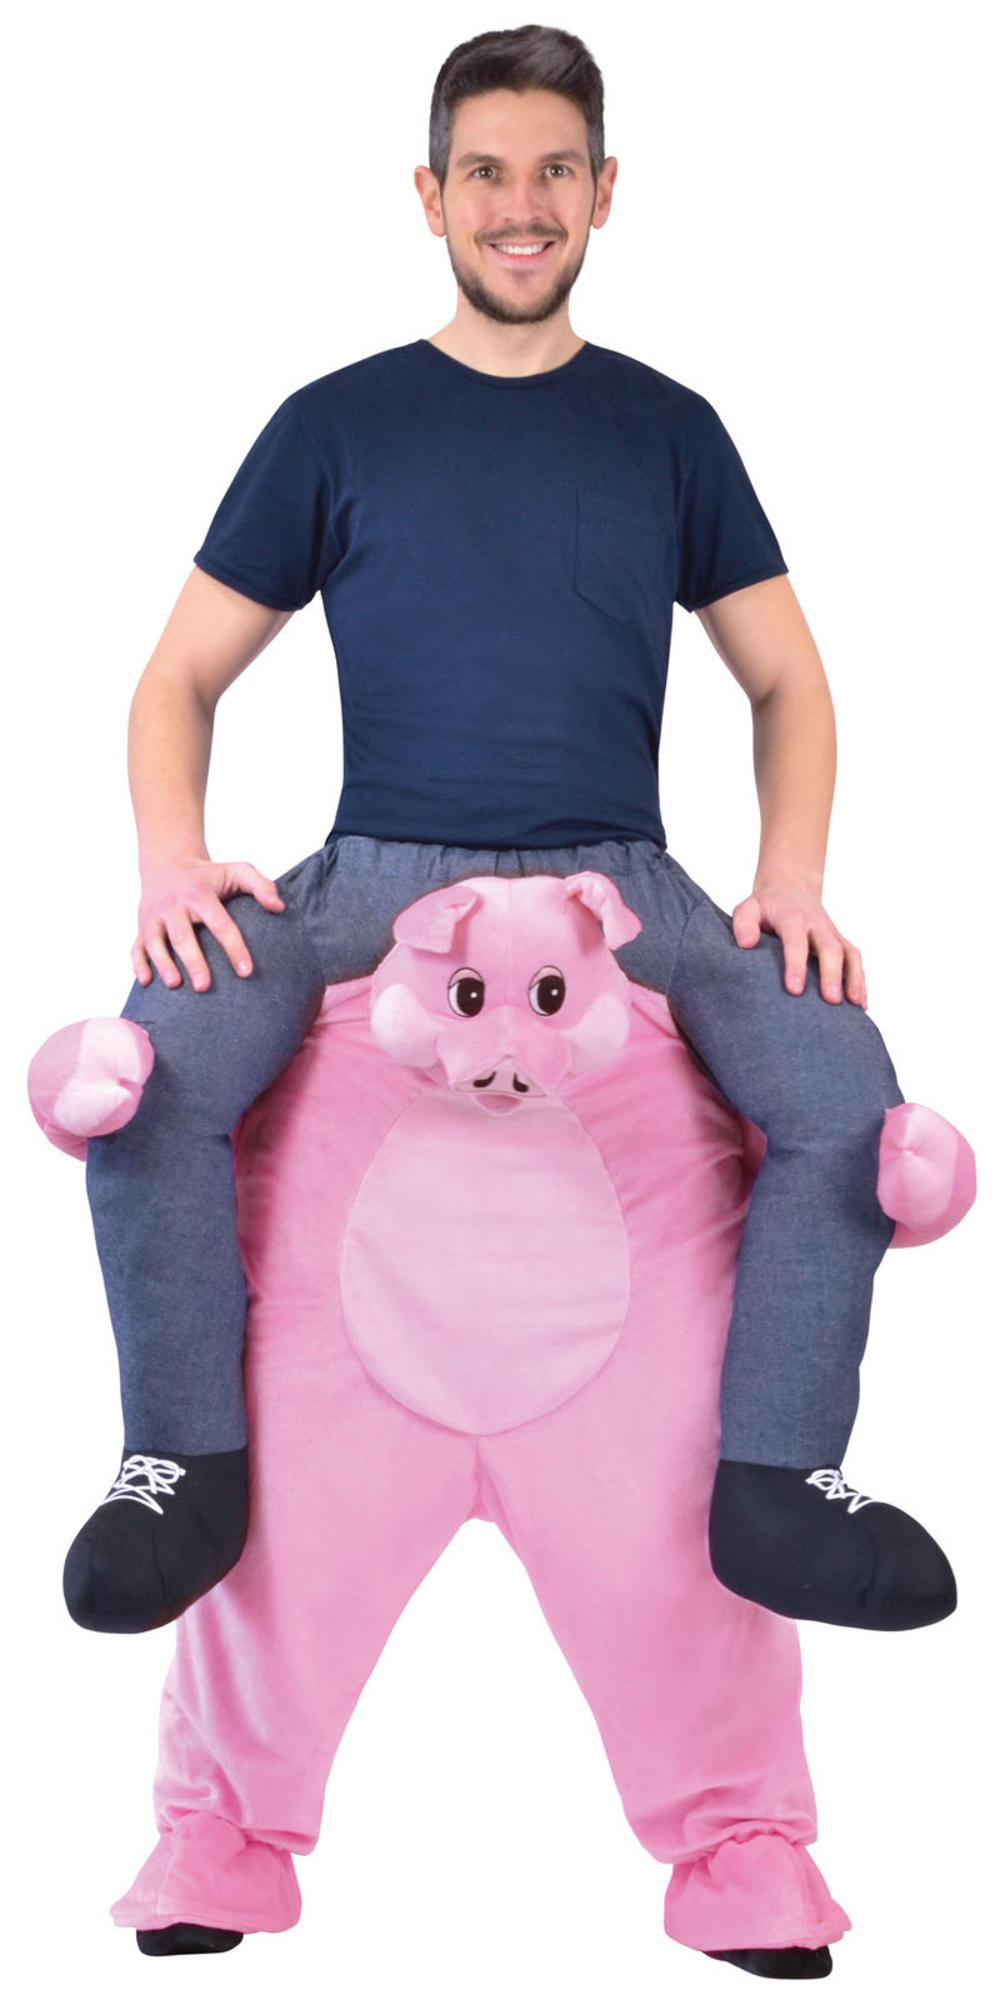 Piggy Back Pig Costume